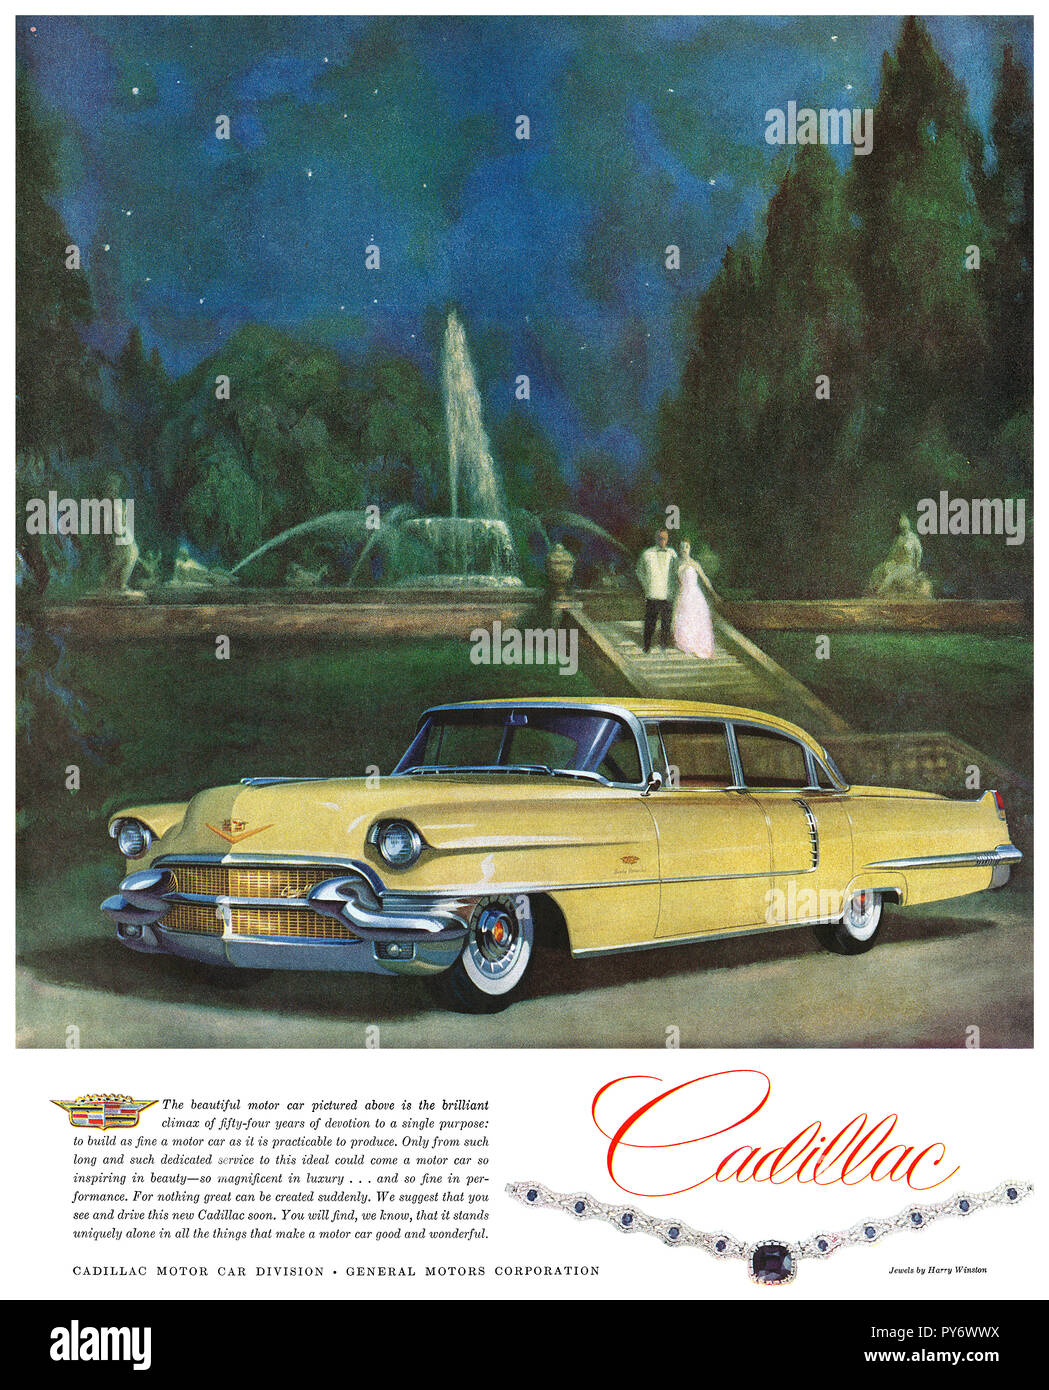 1956 U.S. advertisement for Cadillac automobiles. - Stock Image